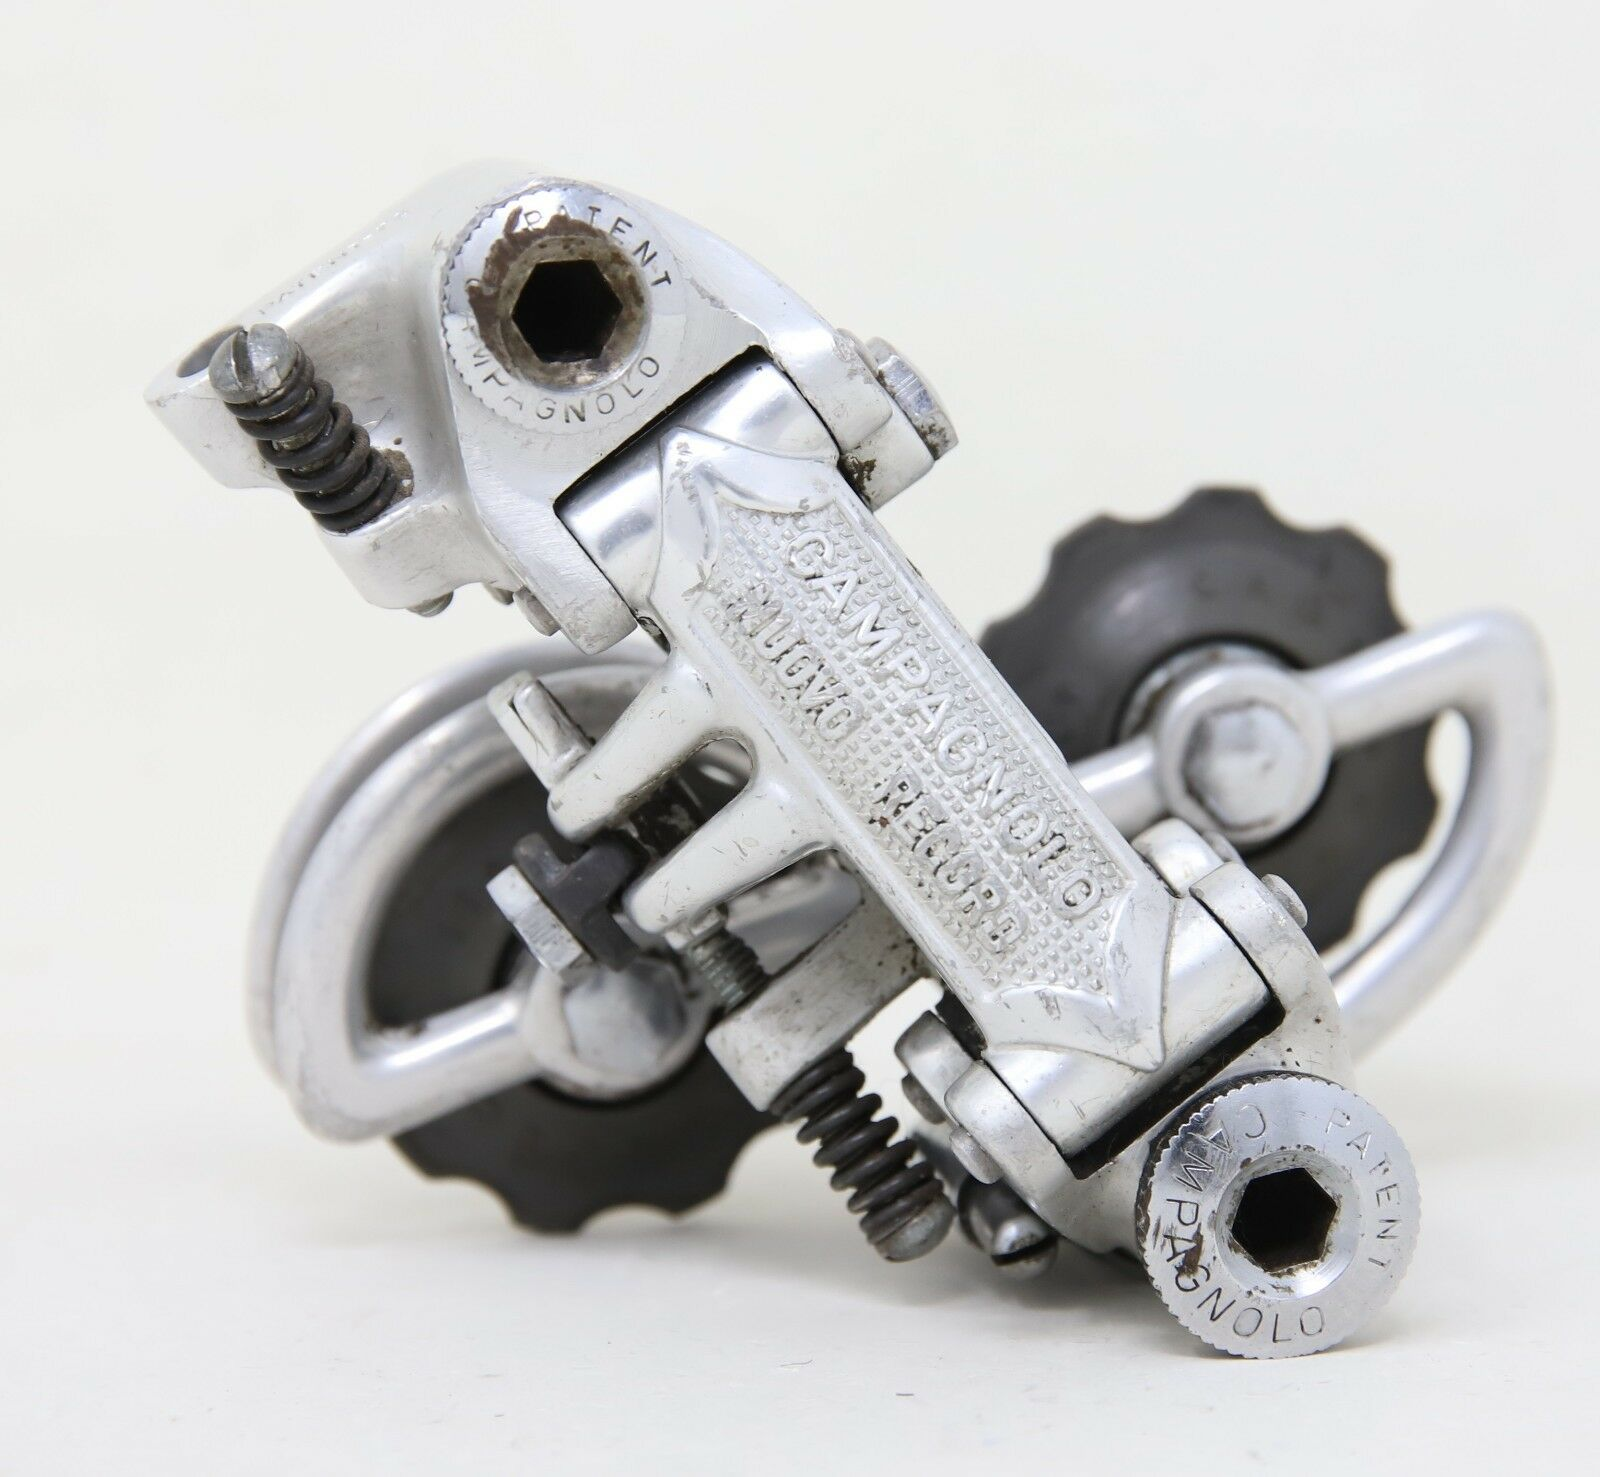 CAMPAGNOLO NUOVO RECORD 1972 PATENT 72 REAR MECH DERAILLSPEED ROAD PAT